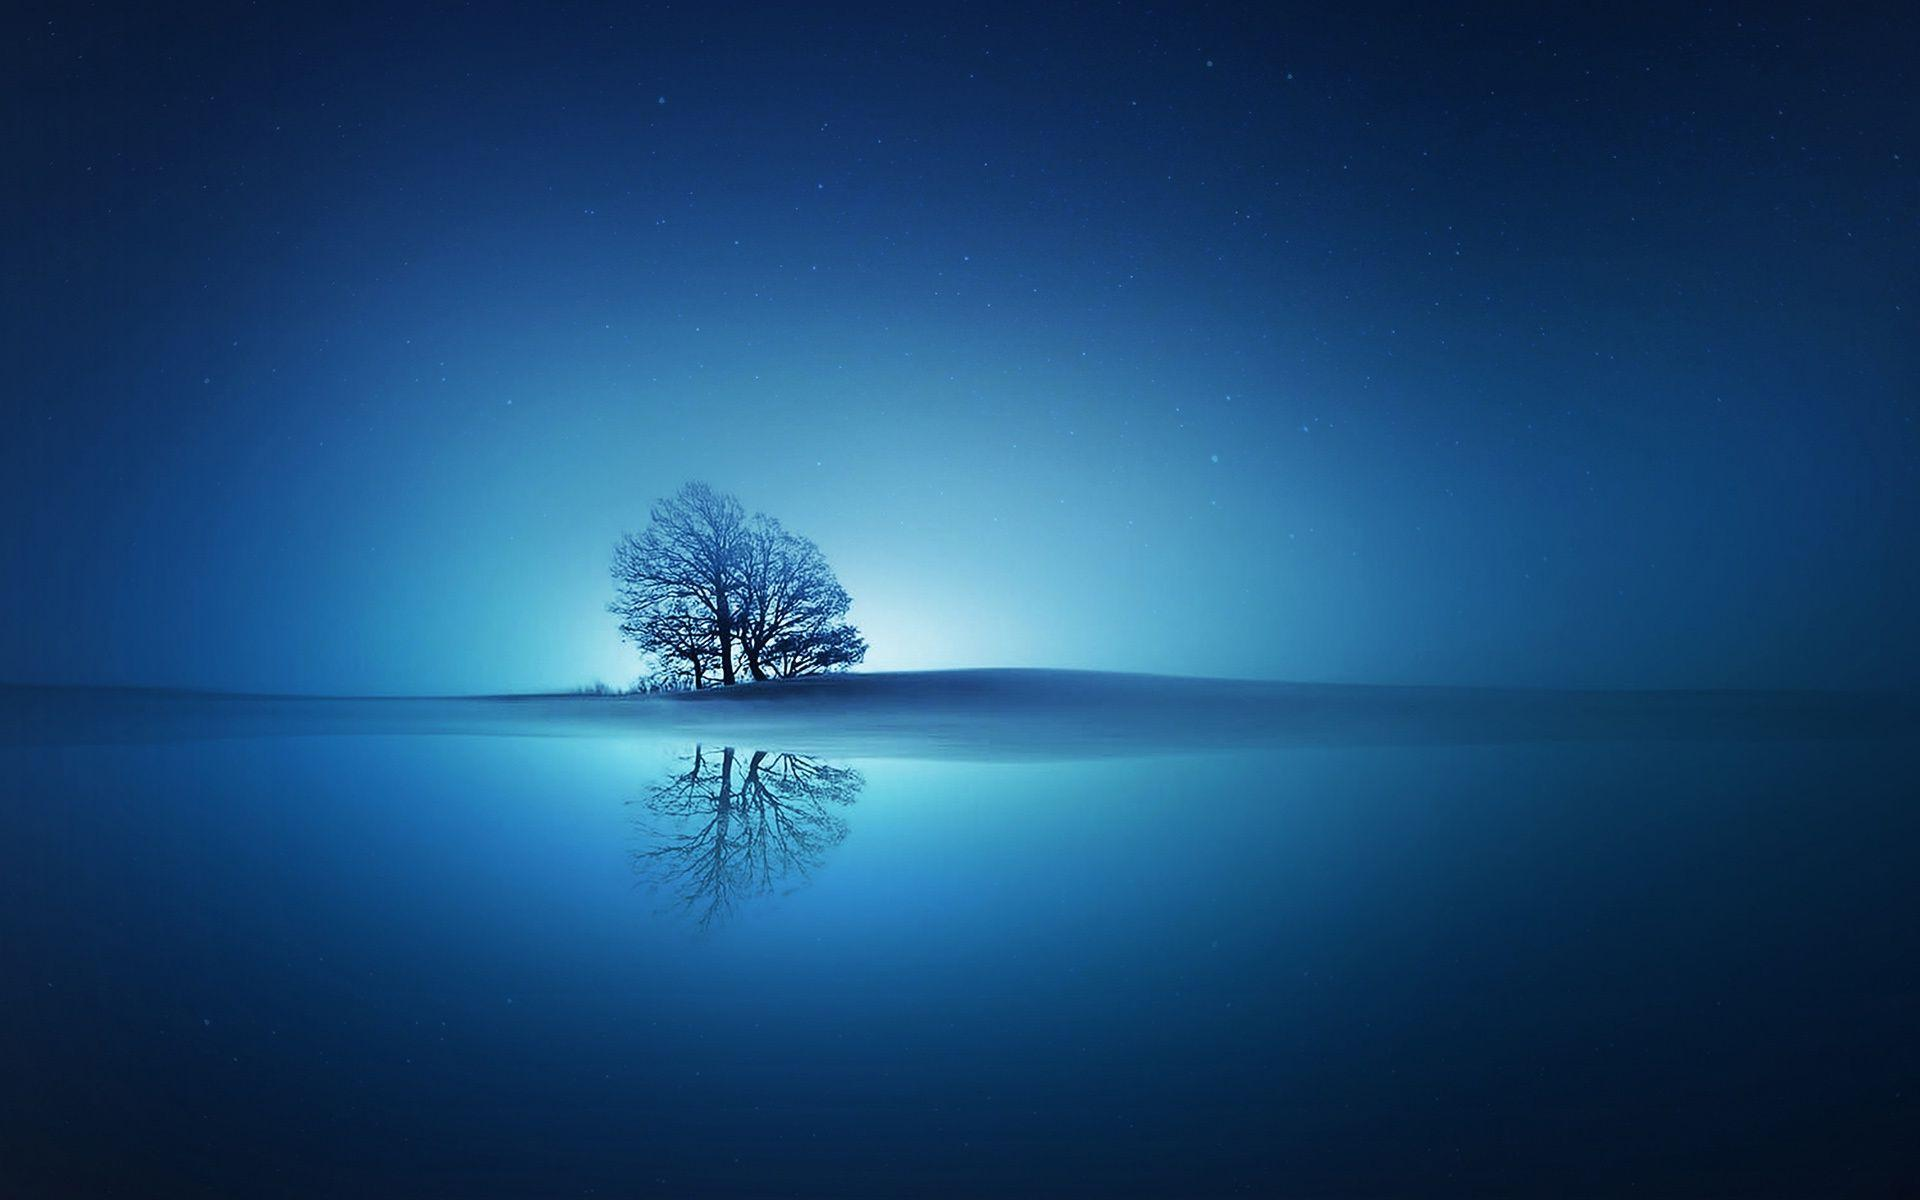 Black Pattern Wallpaper Hd Tree In The Blue Sunset Wallpaper Download Free 148983